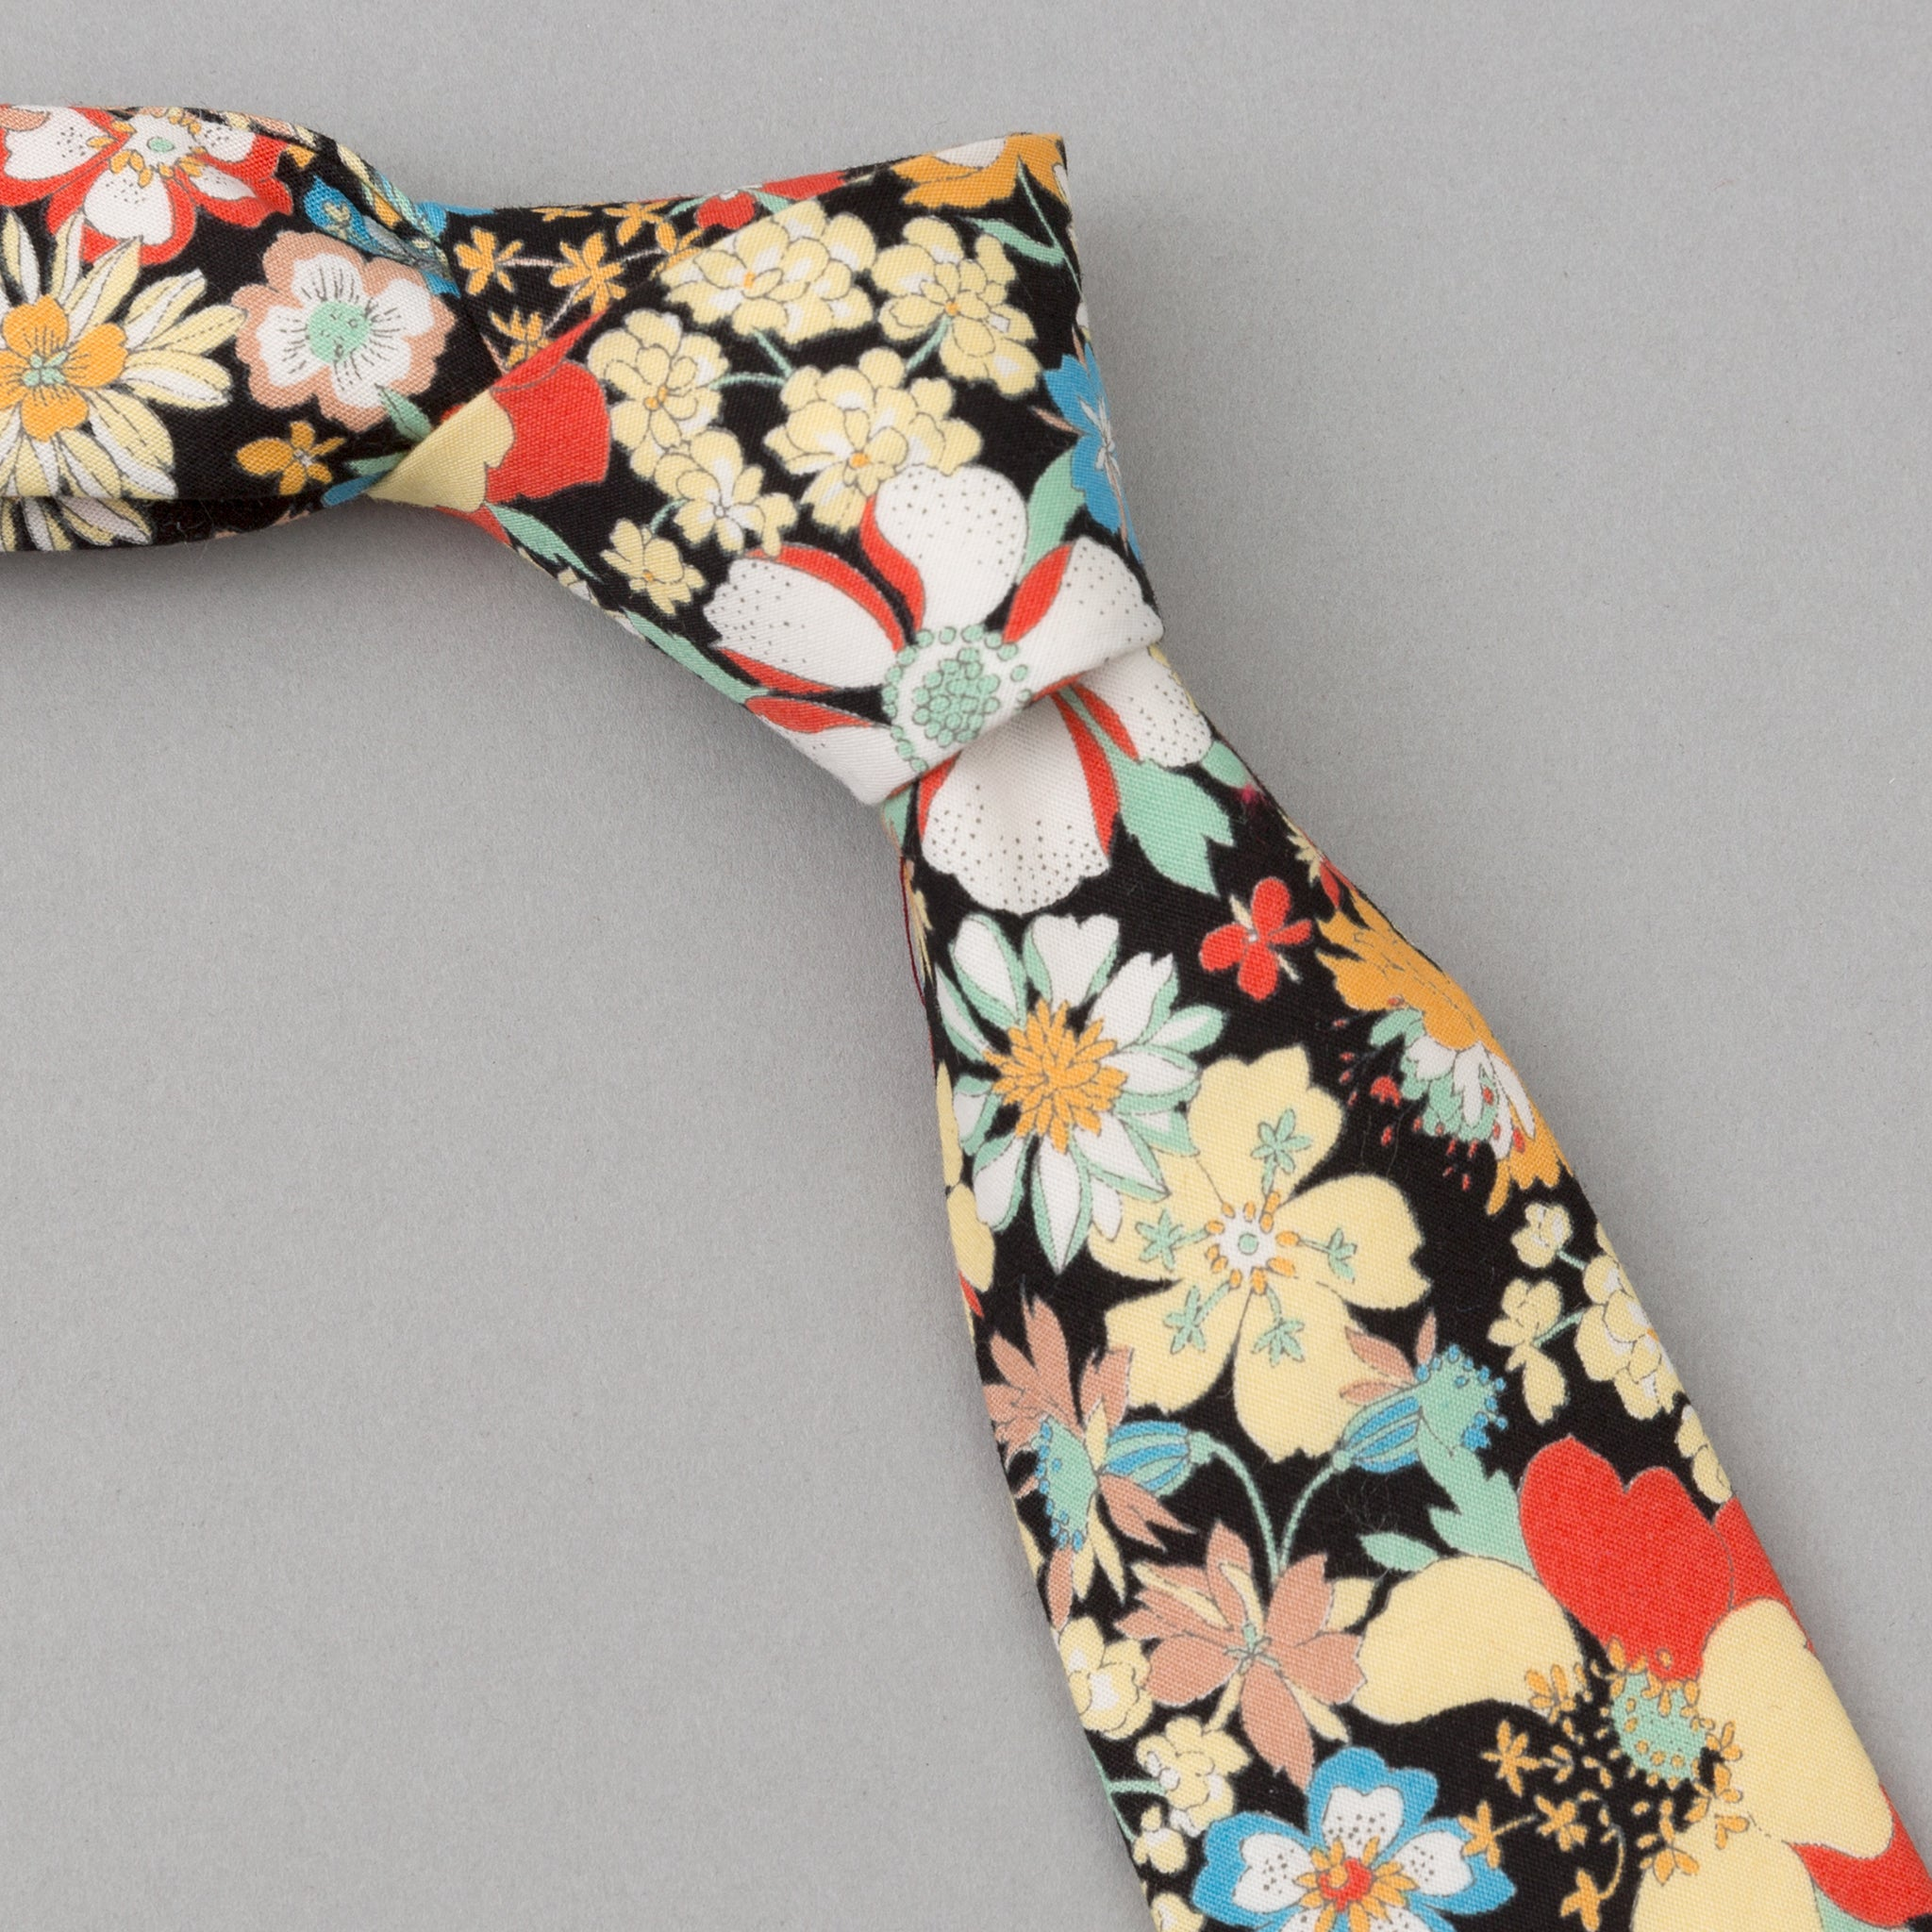 The Hill-Side - Psychedelic Floral Print Tie, Black - PT1-489 / ST1-489 - image 1